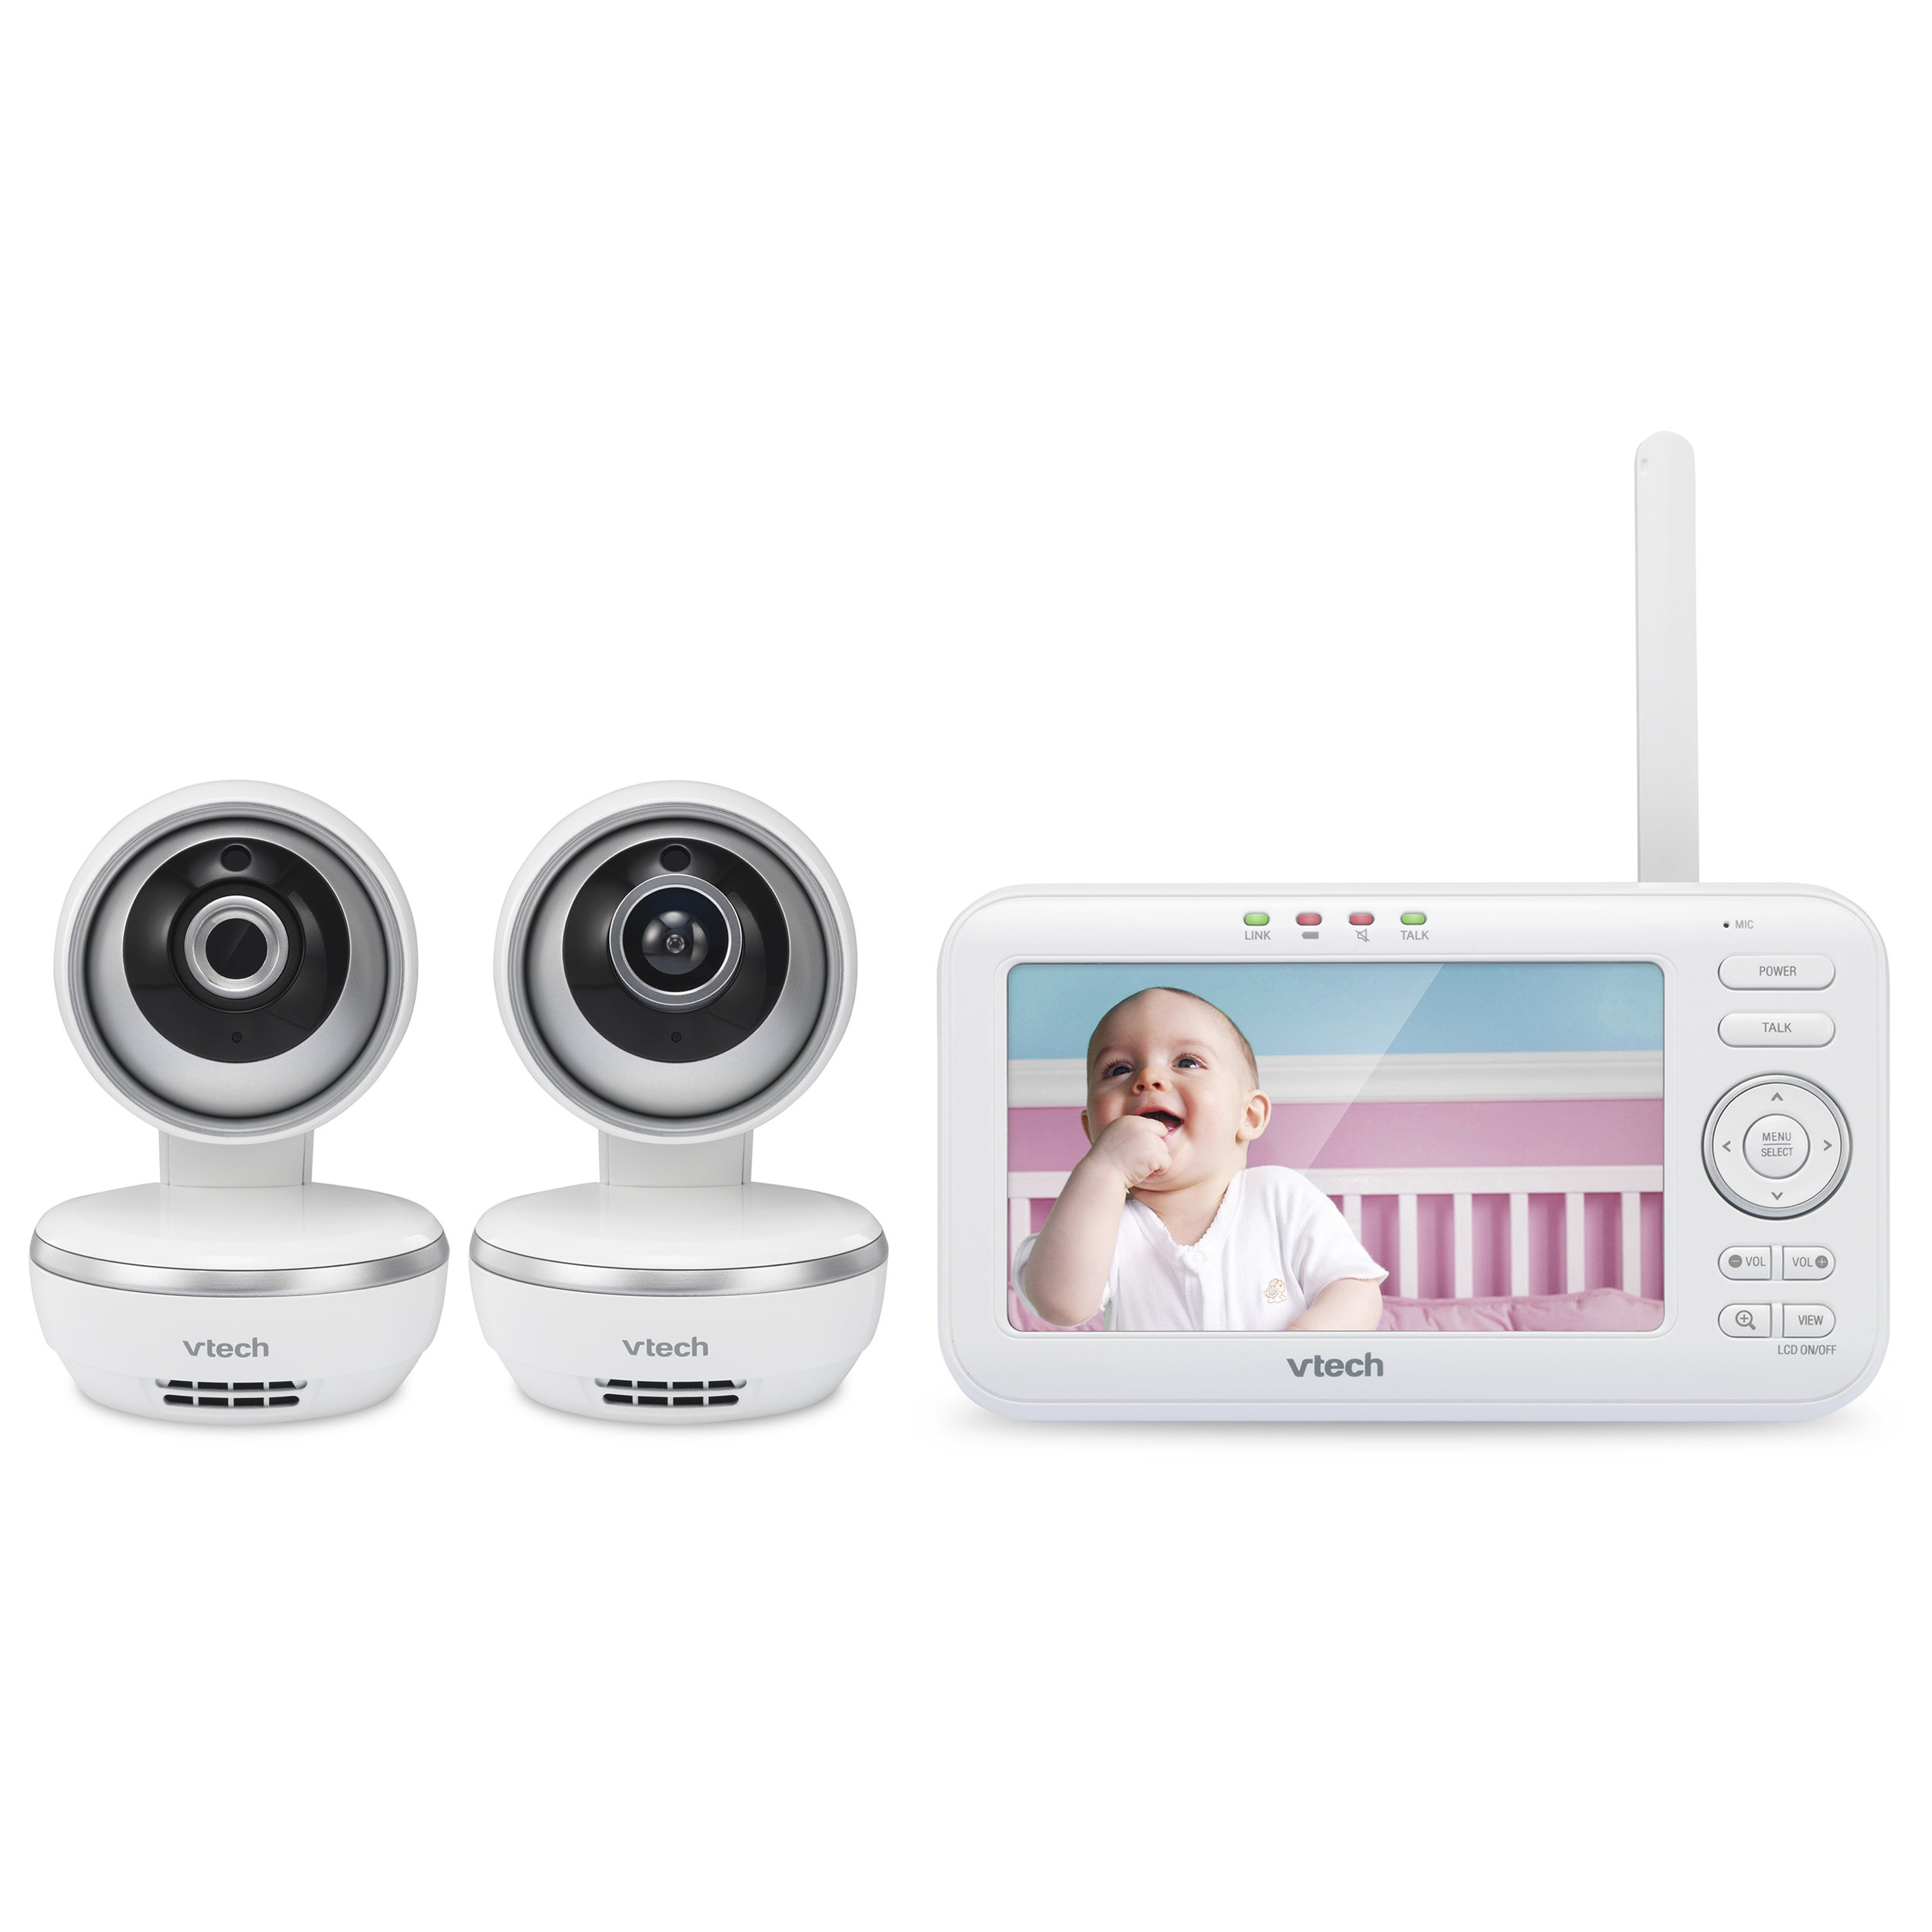 """VTech VM5261-2 5"""" Digital Video Baby Monitor with 2 Pan & Tilt Cameras, Wide-Angle Lens and Standard Lens, White by VTech (Image #7)"""